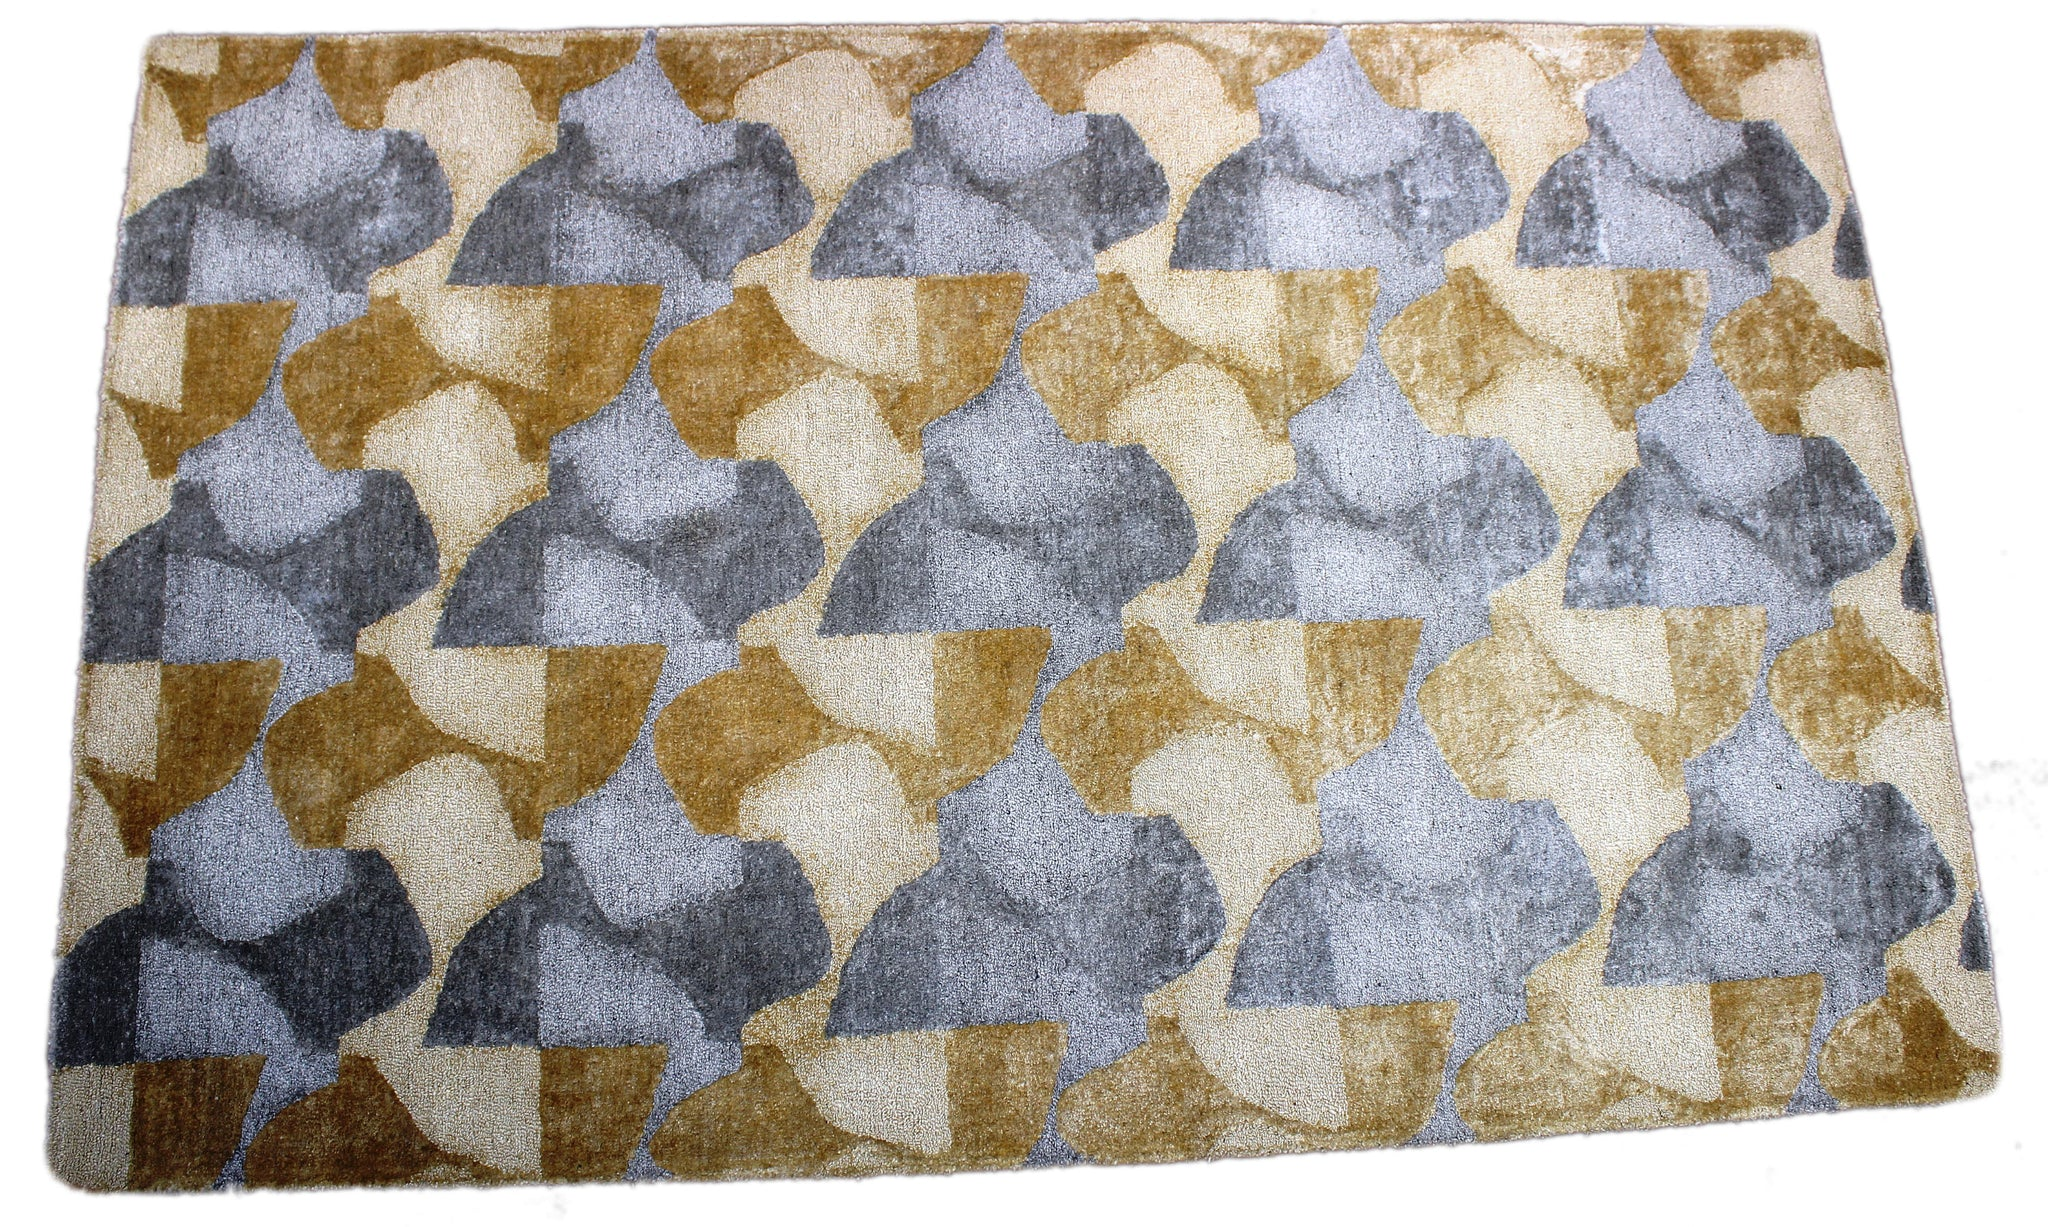 gold and gray handmade rug by verve hand-made